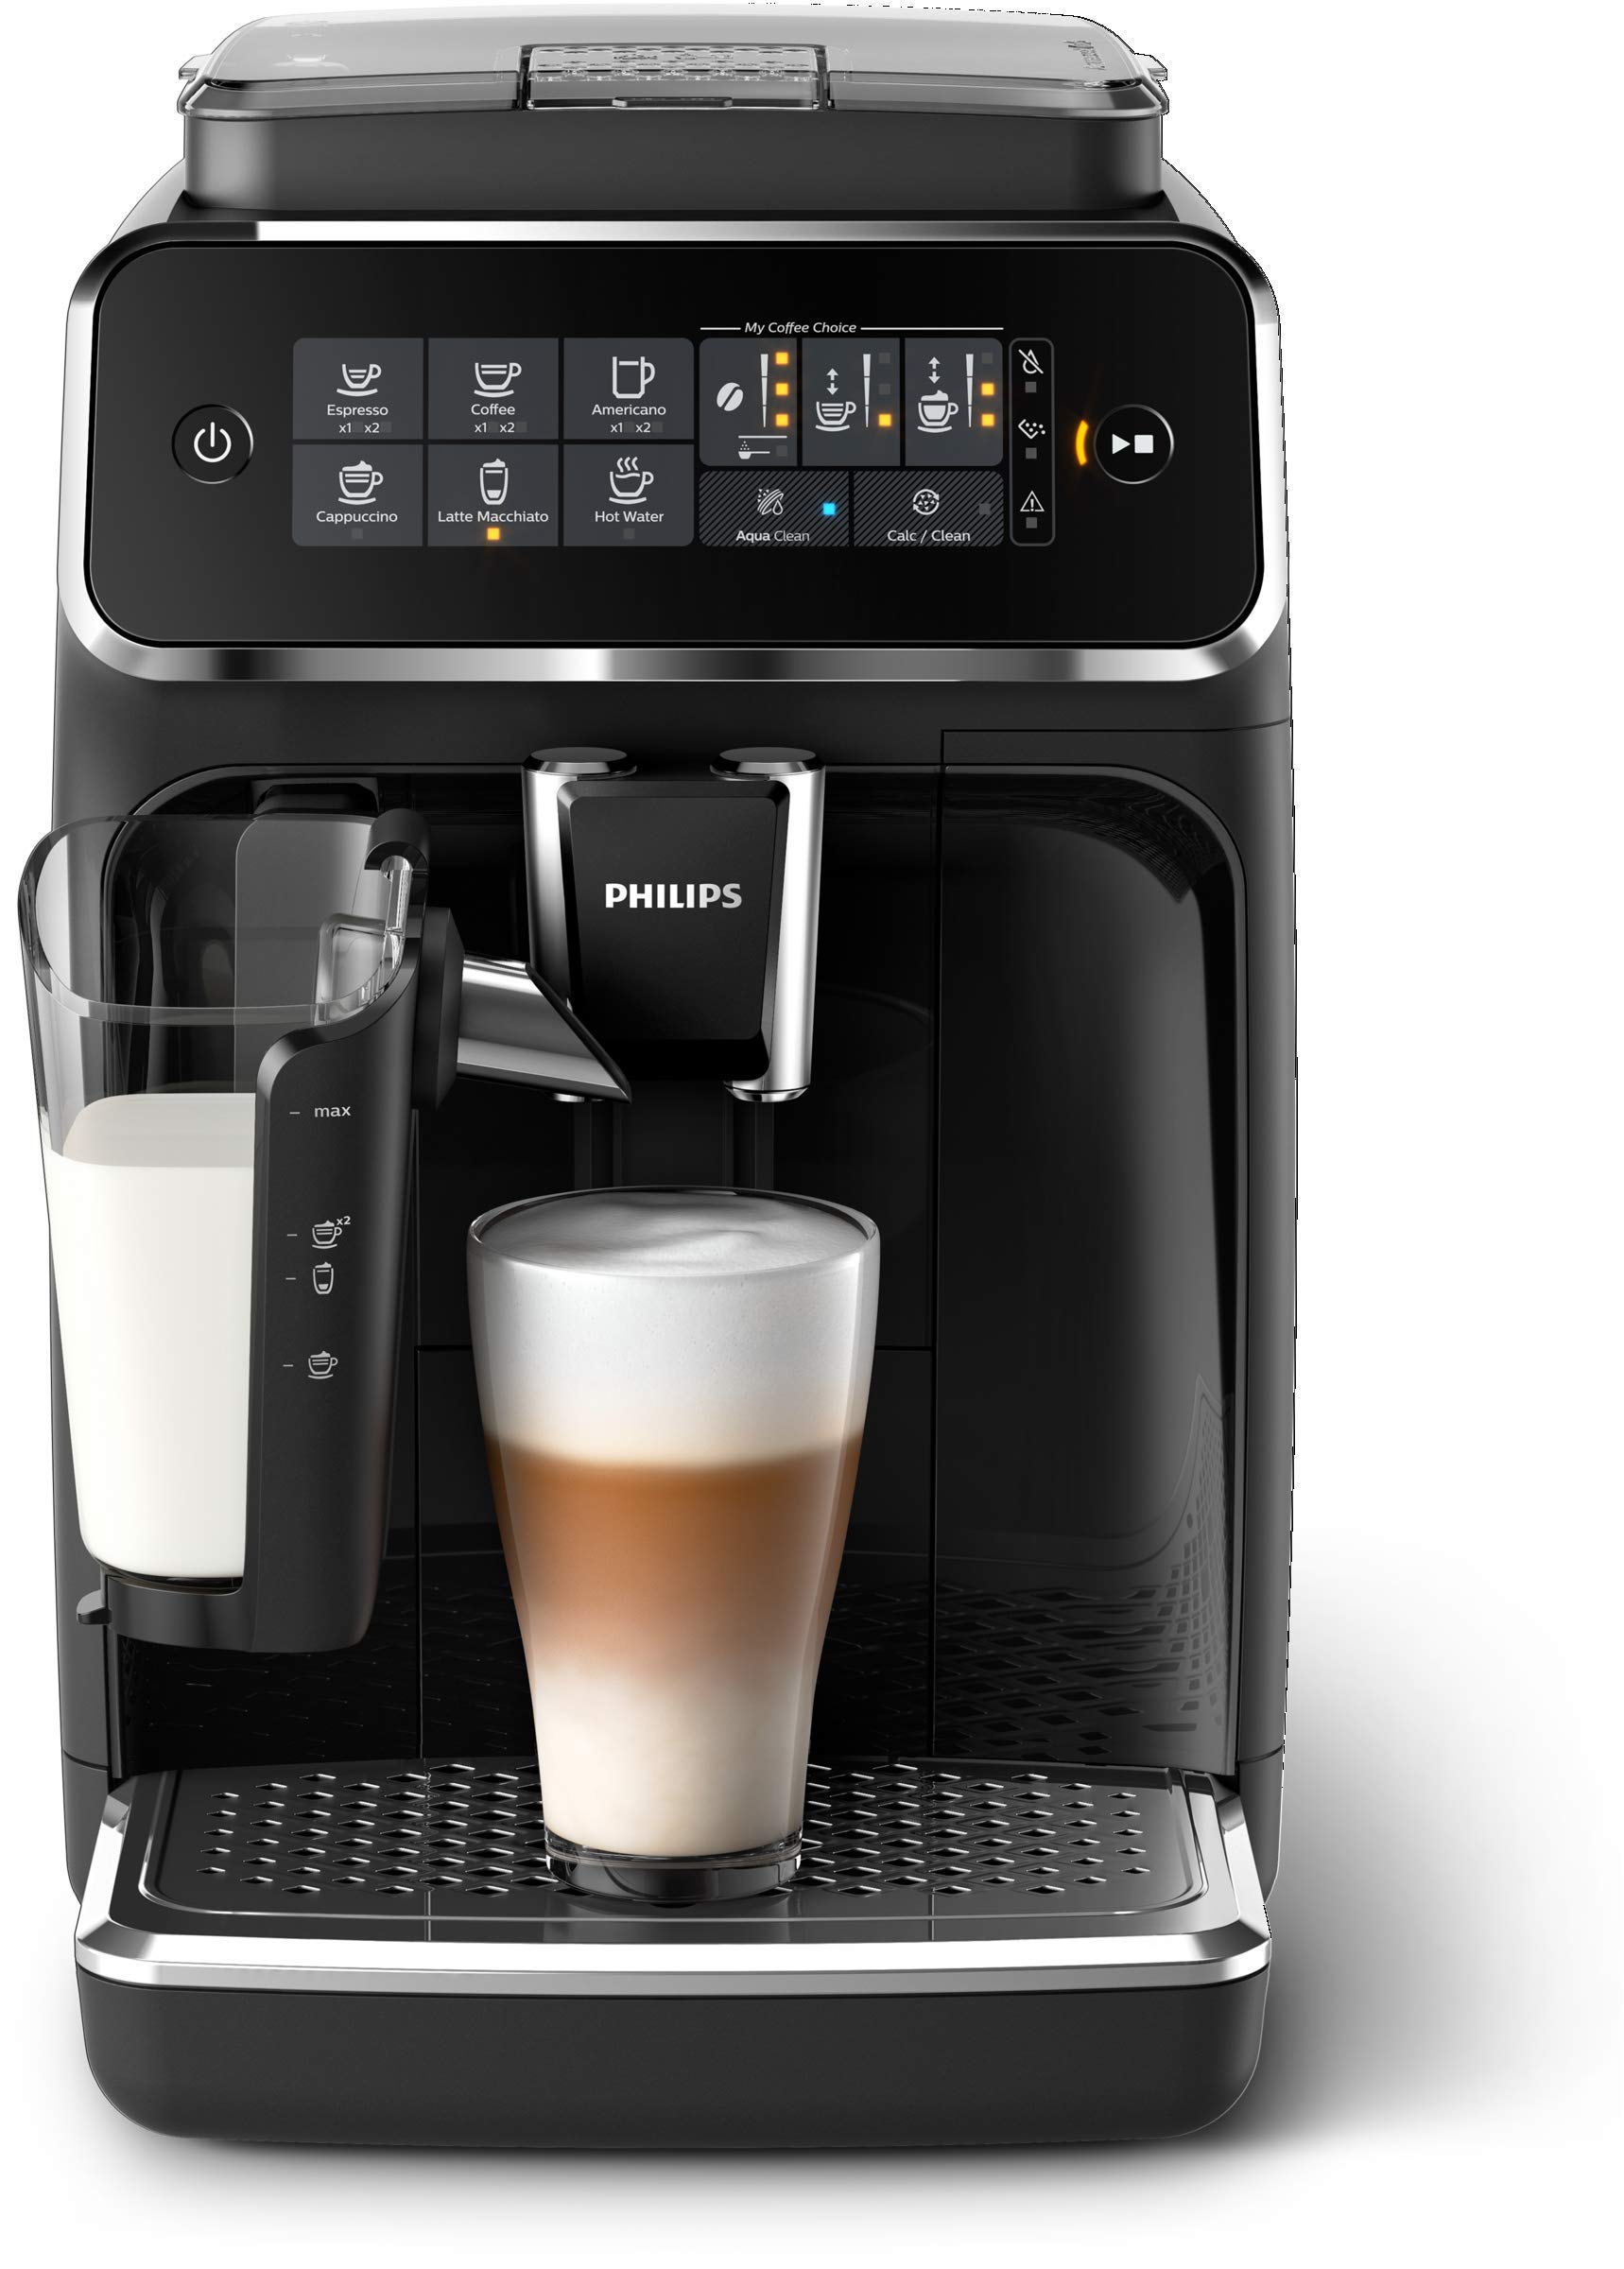 Philips 3200 Series Fully Automatic Espresso Machine w/ LatteGo, Black by Philips Kitchen Appliances